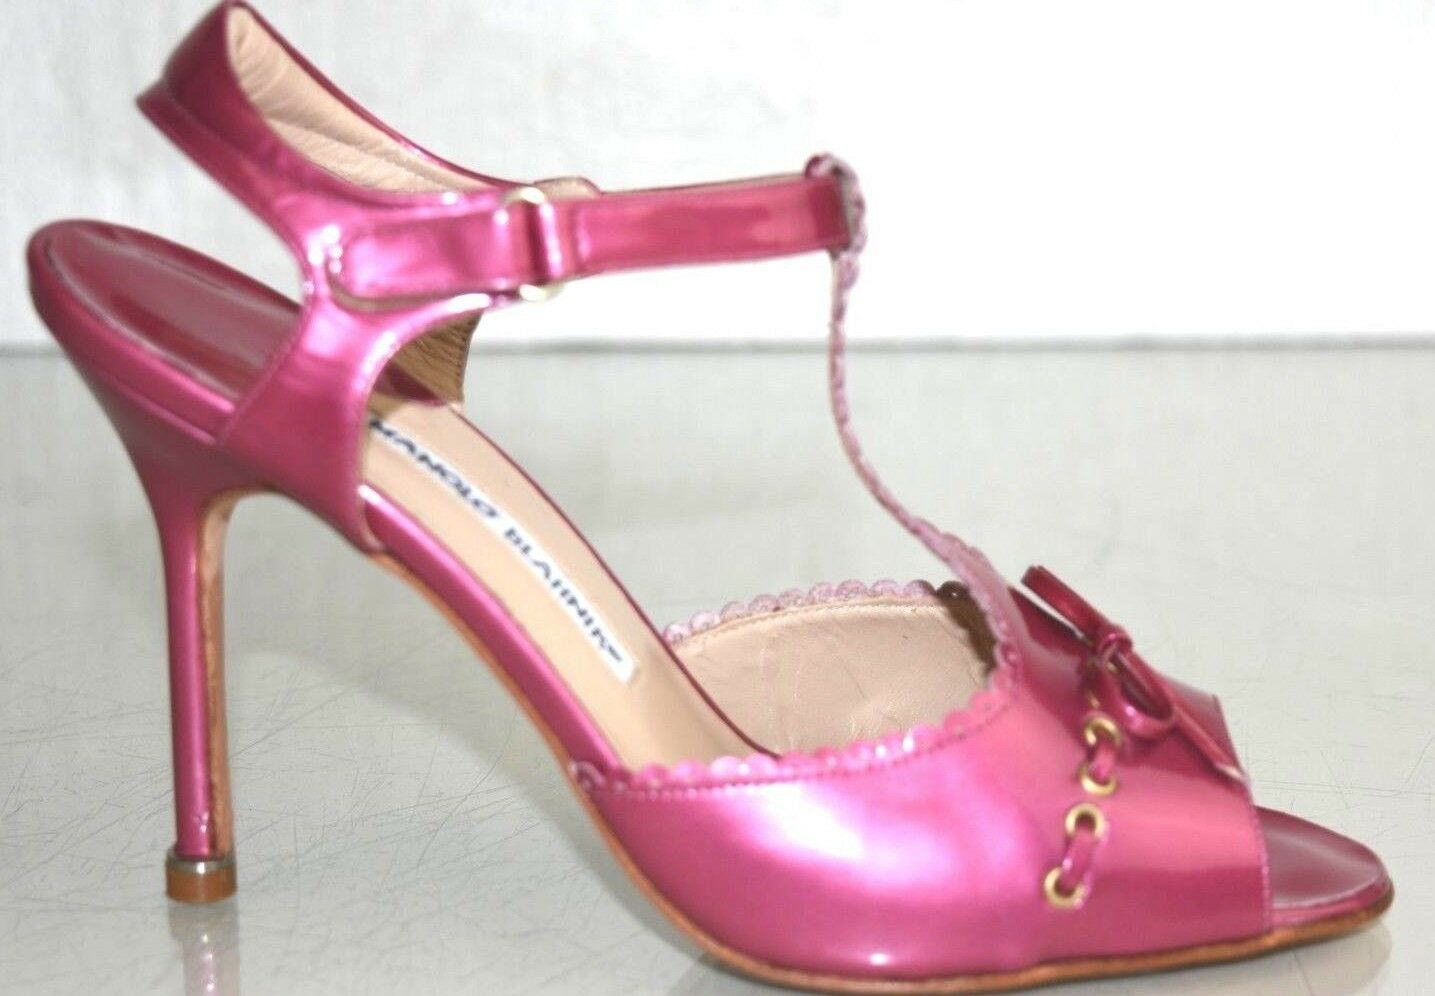 NEW Manolo Blahnik 105 PEARLY PEARLY PEARLY Patent Leather Sandals Pink Scalloped Bow shoes 37 1381c4